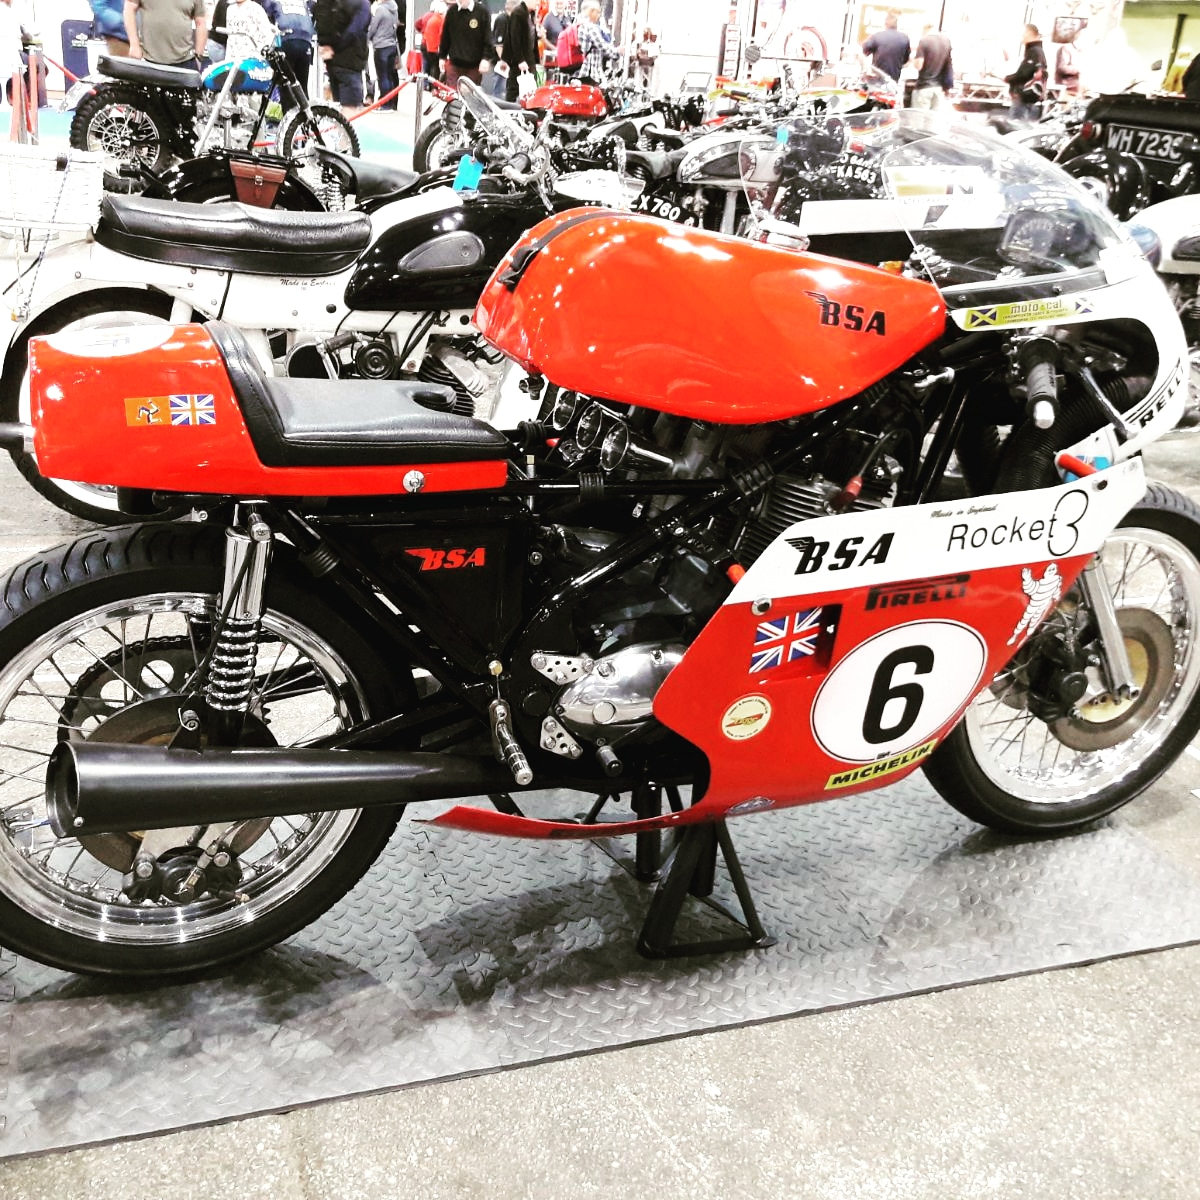 BSA 750cc Rocket III Rob North racing motorcycle